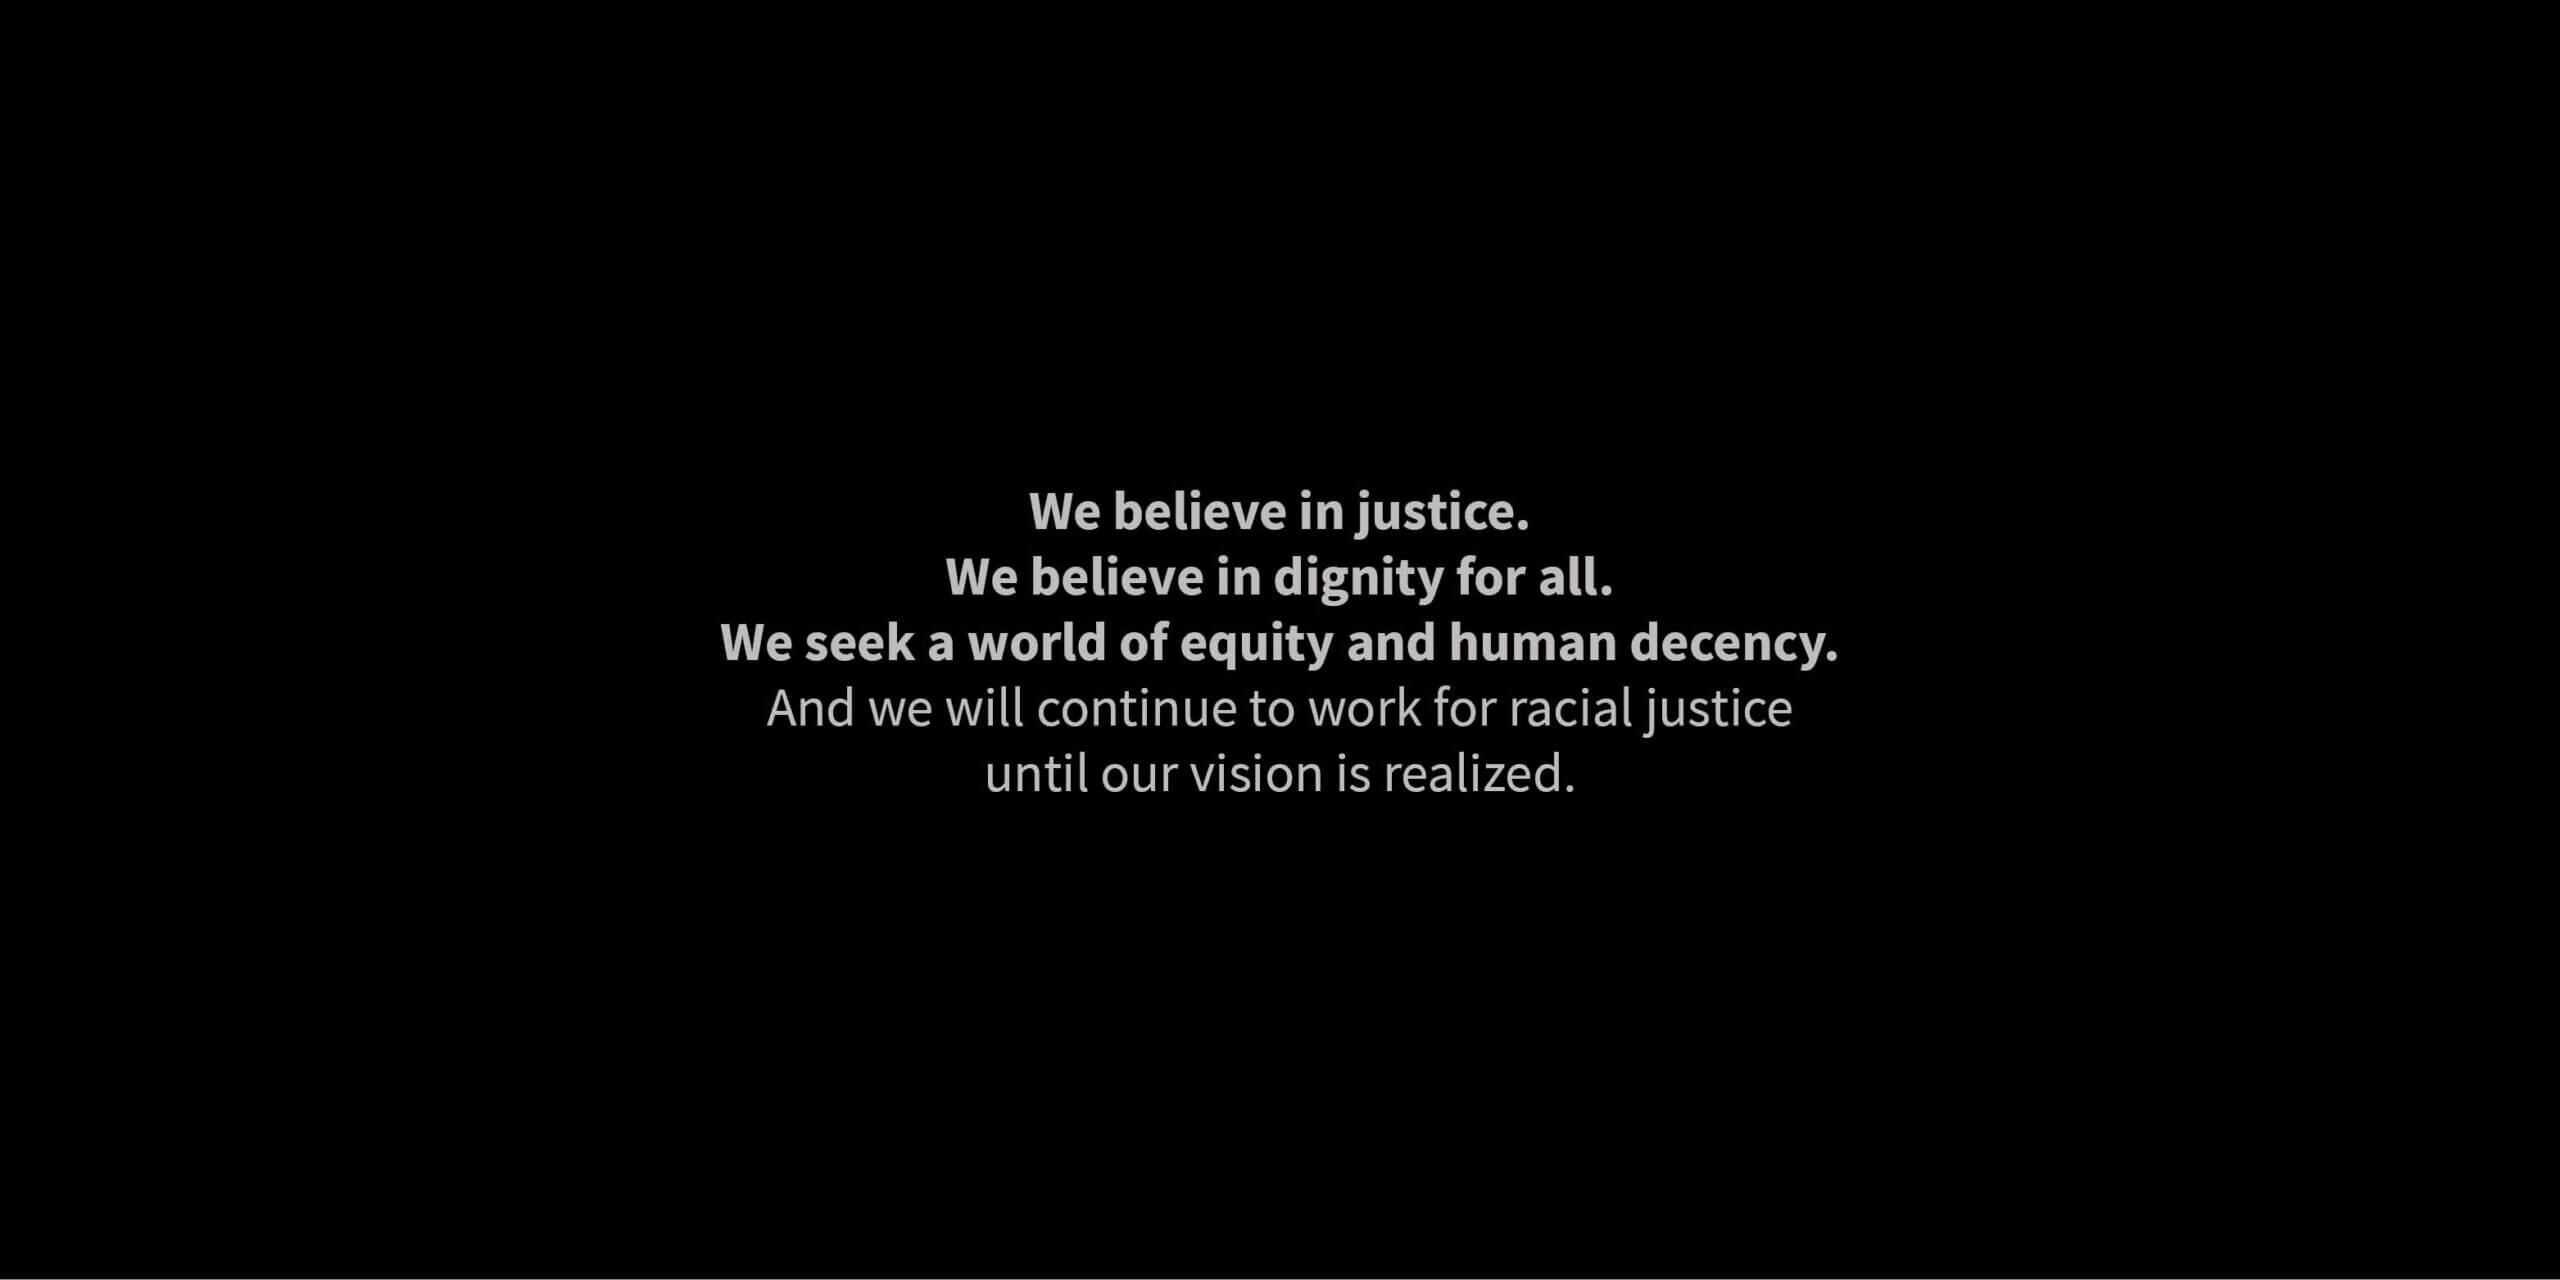 We believe in justice. We believe in dignity for all. We seek a world of equity and human decency. And we will continue to work for racial justice until our vision is realized.